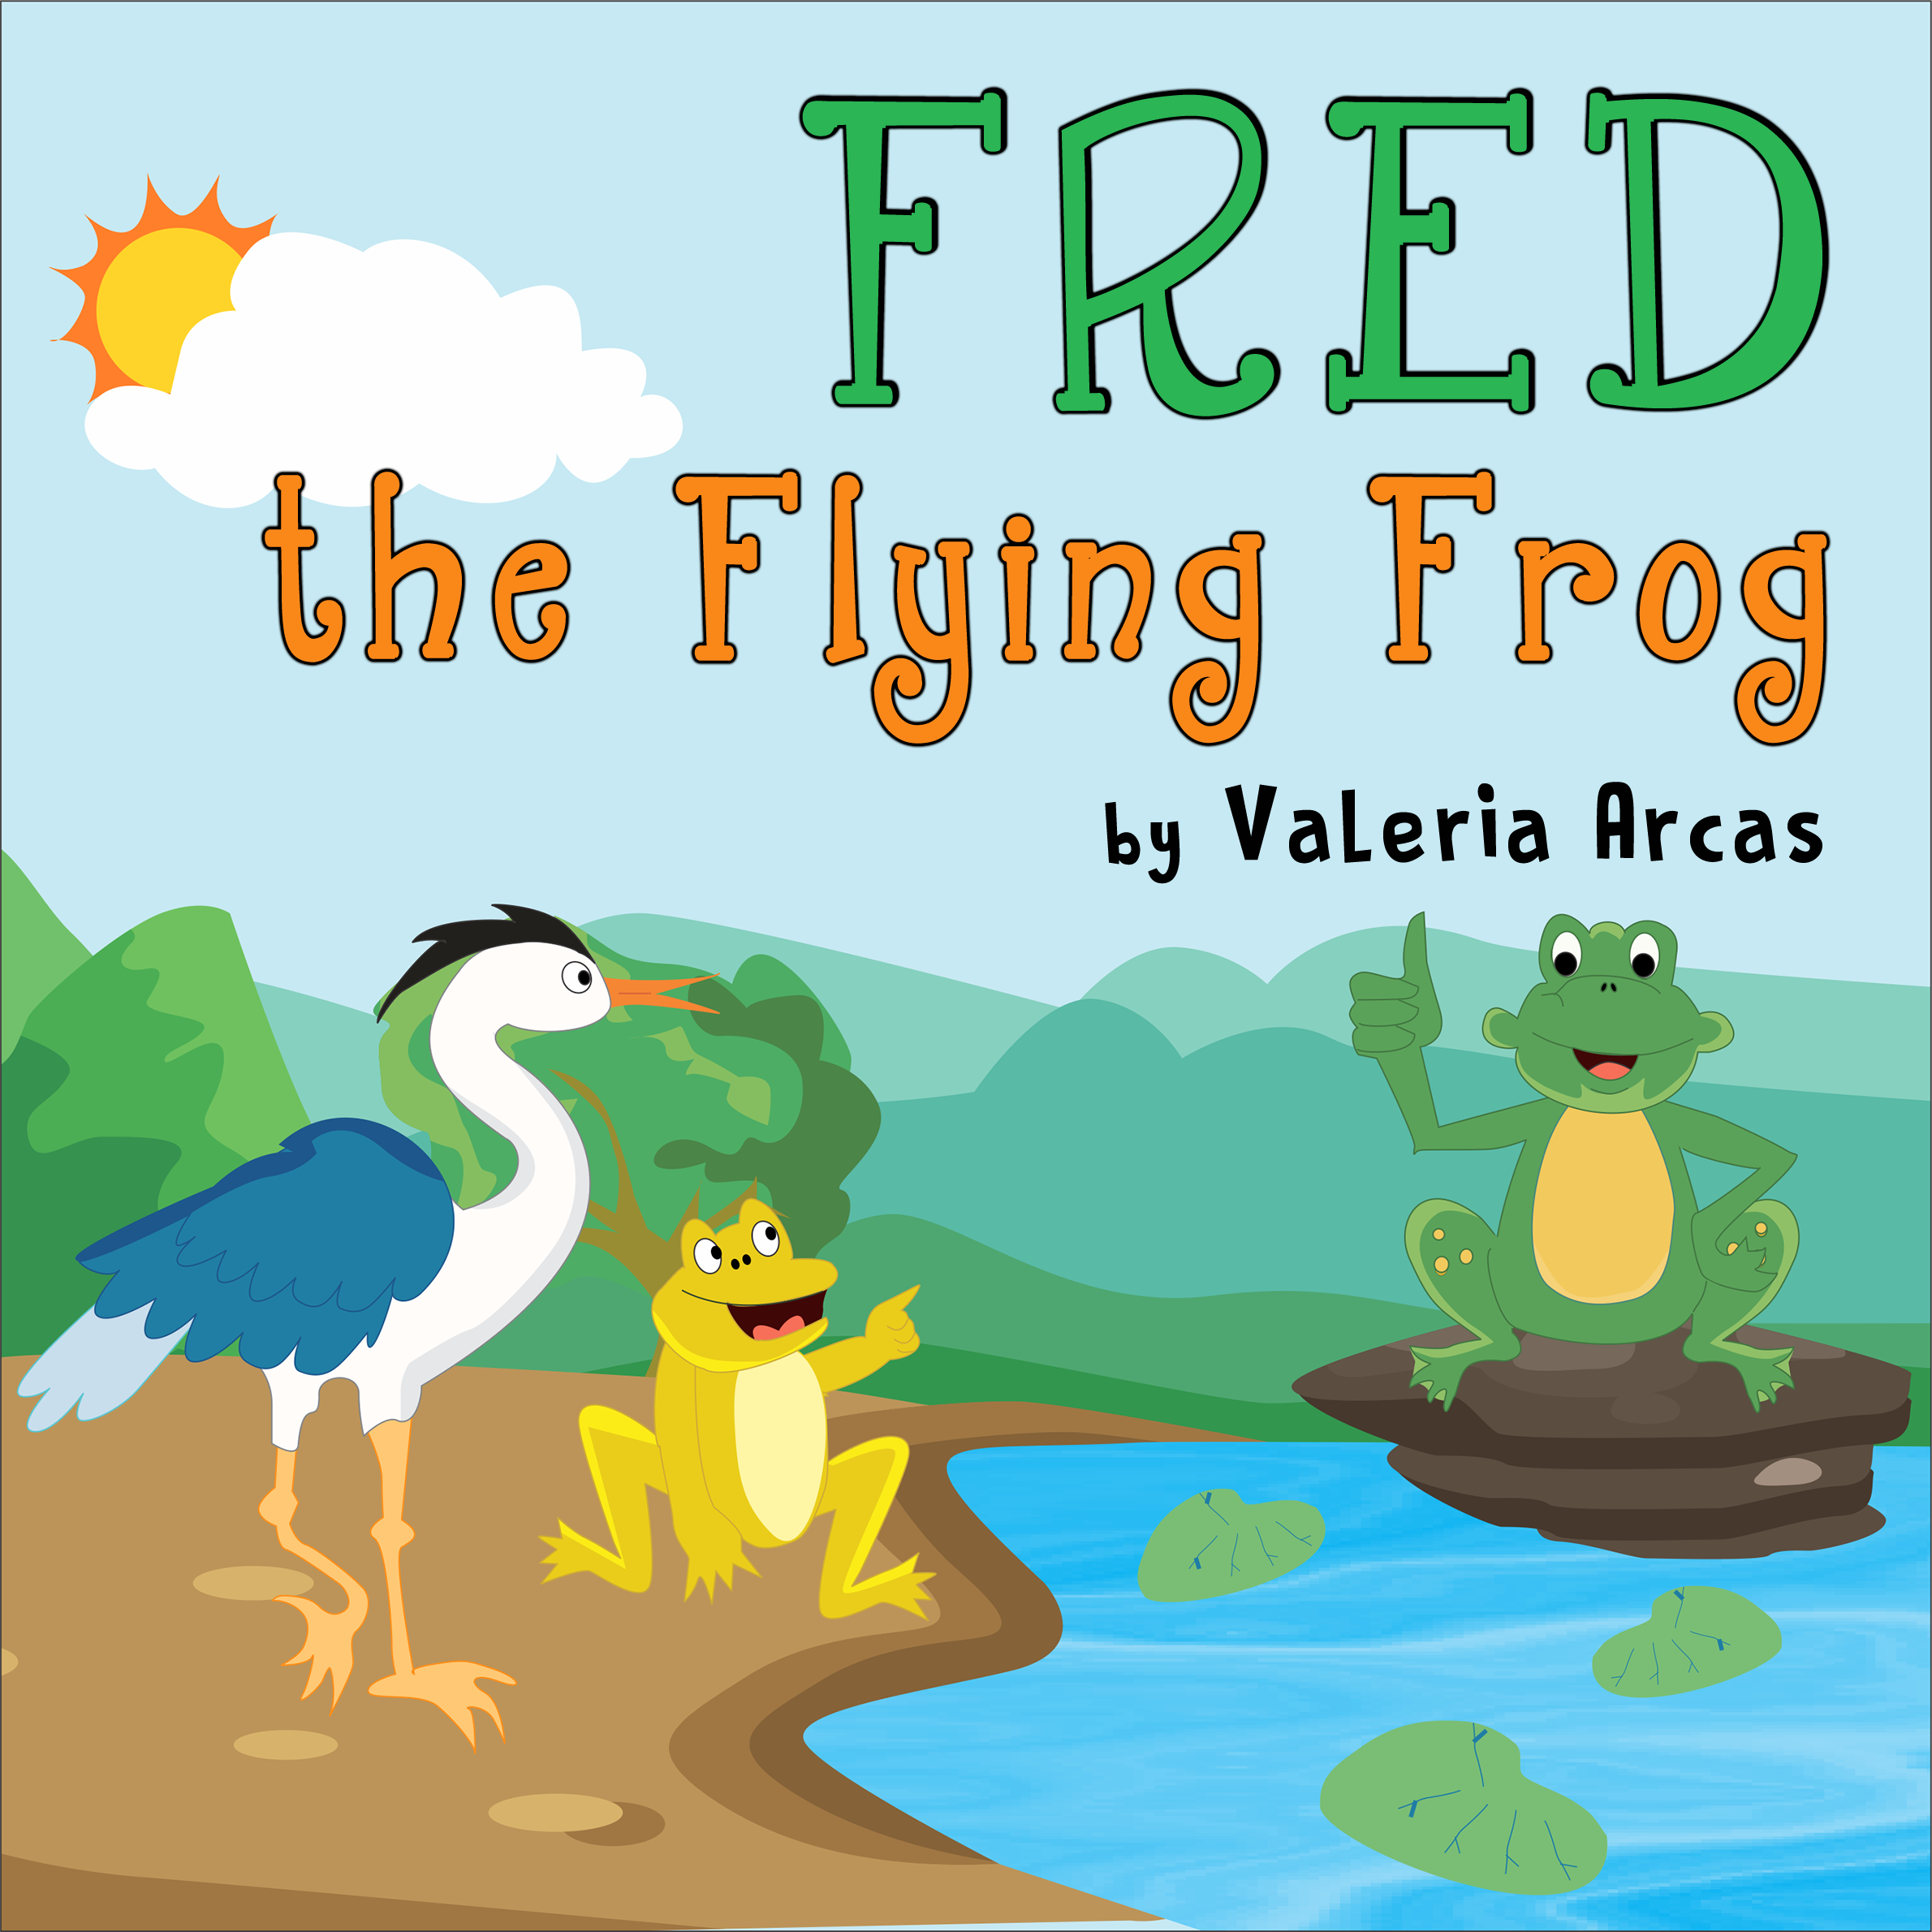 Fred the Flying Frog